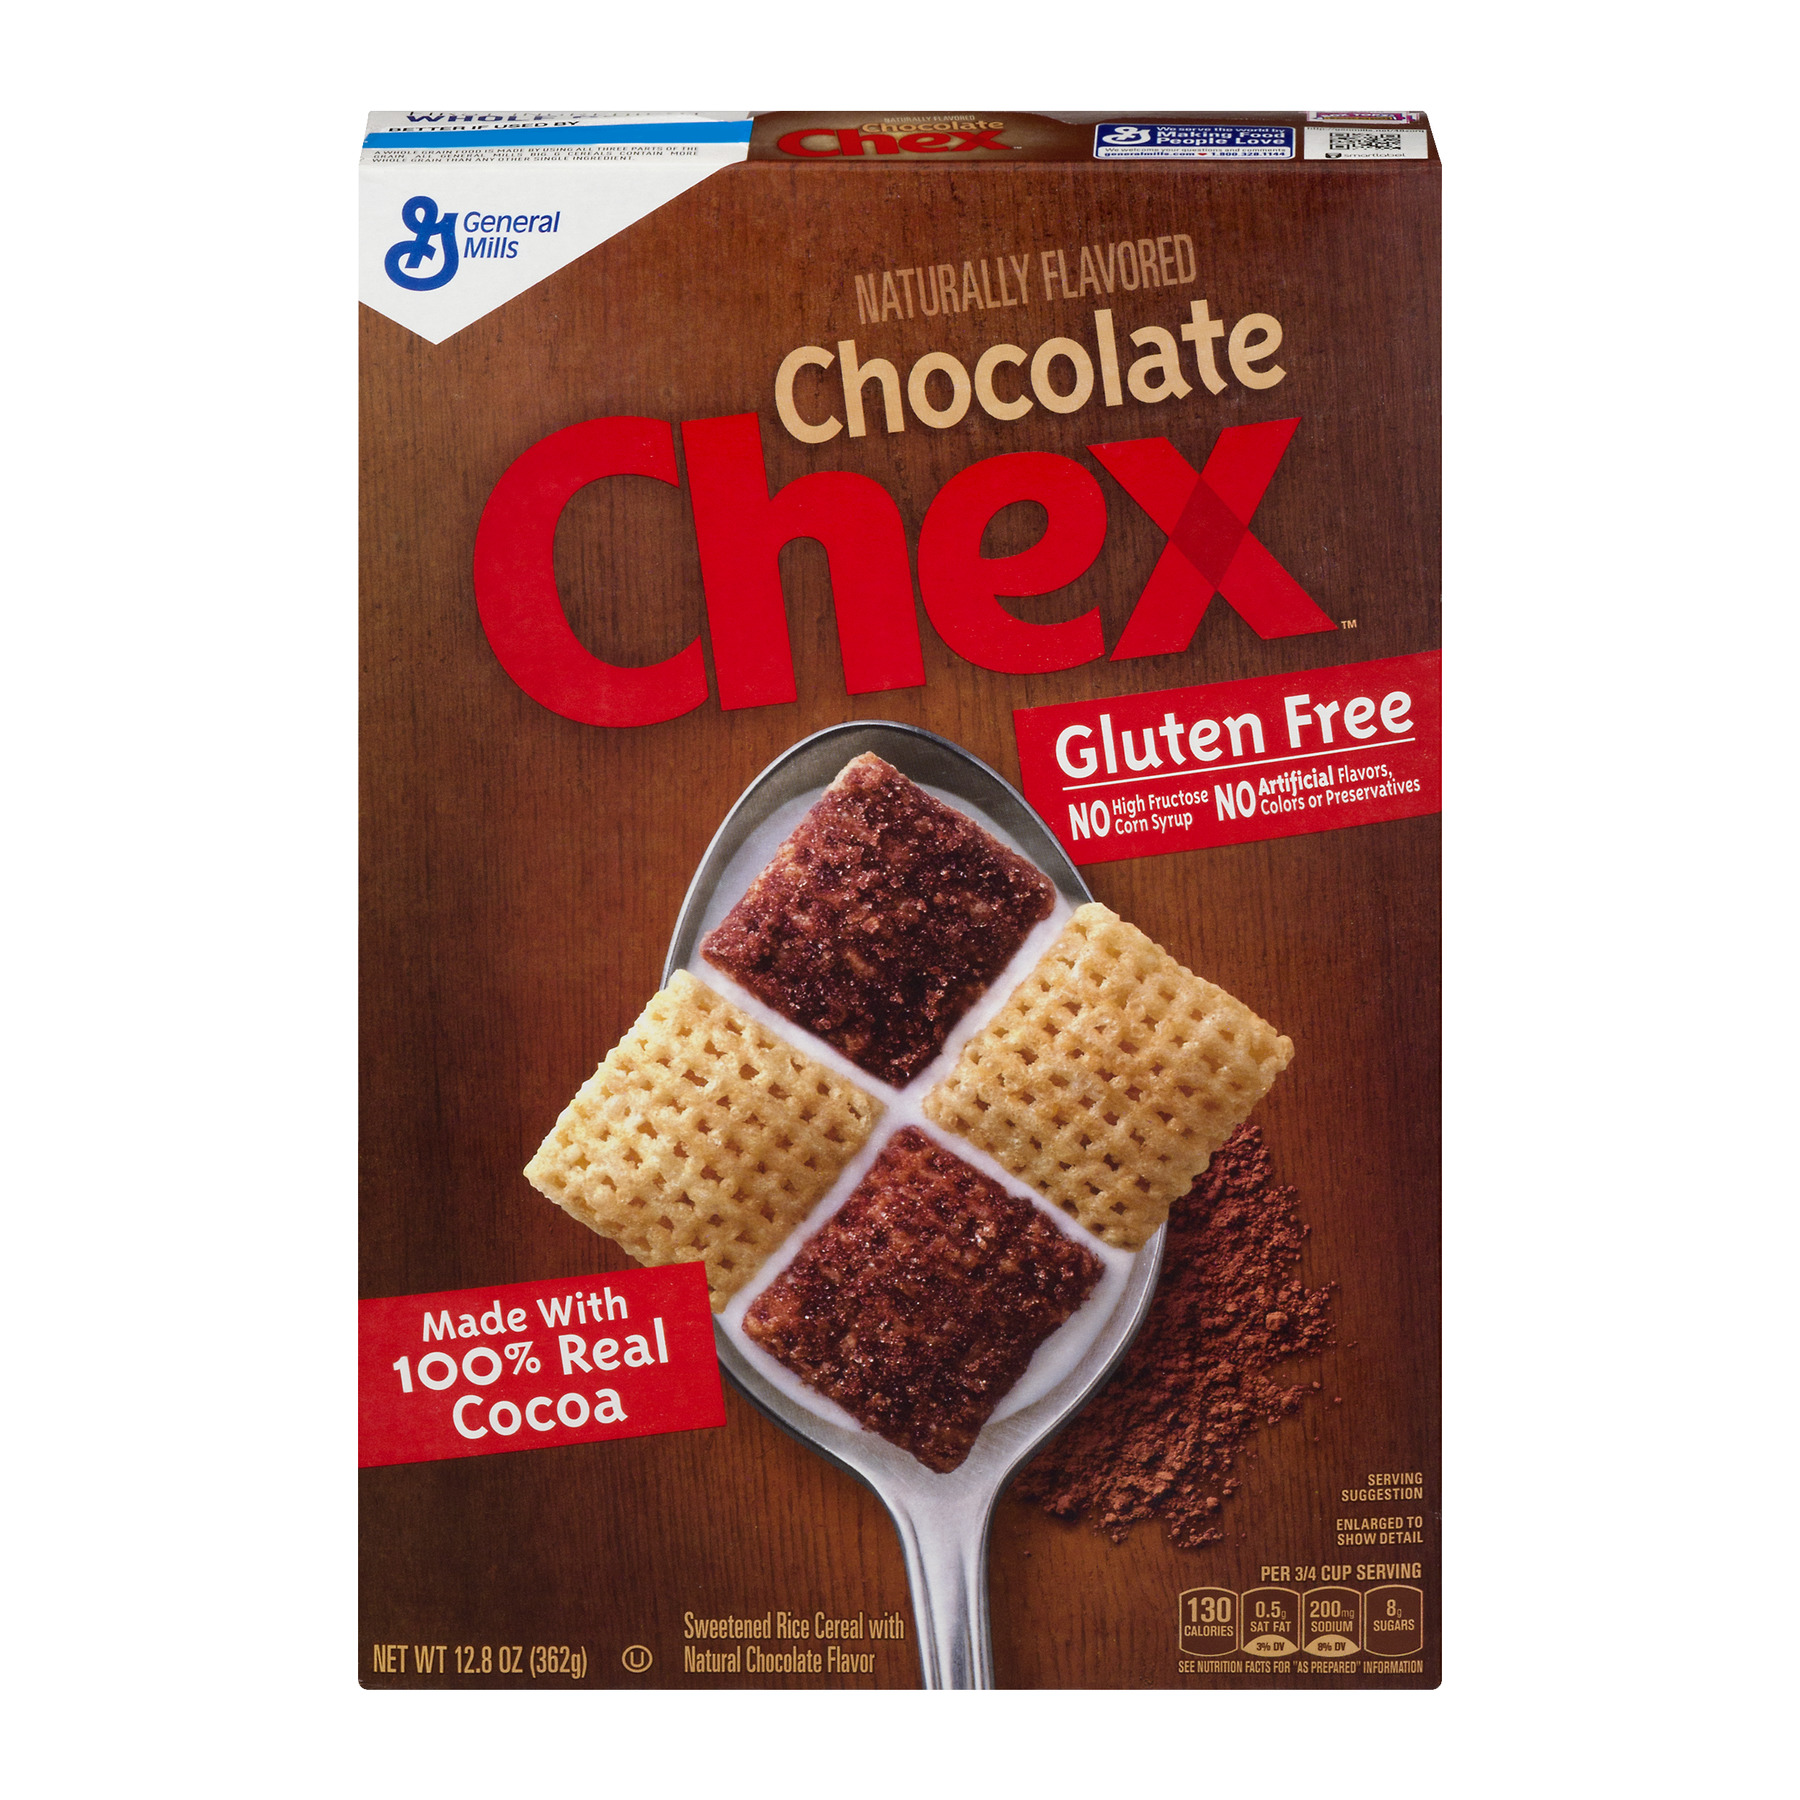 Chocolate Chex Gluten Free Cereal 12.8 oz Box